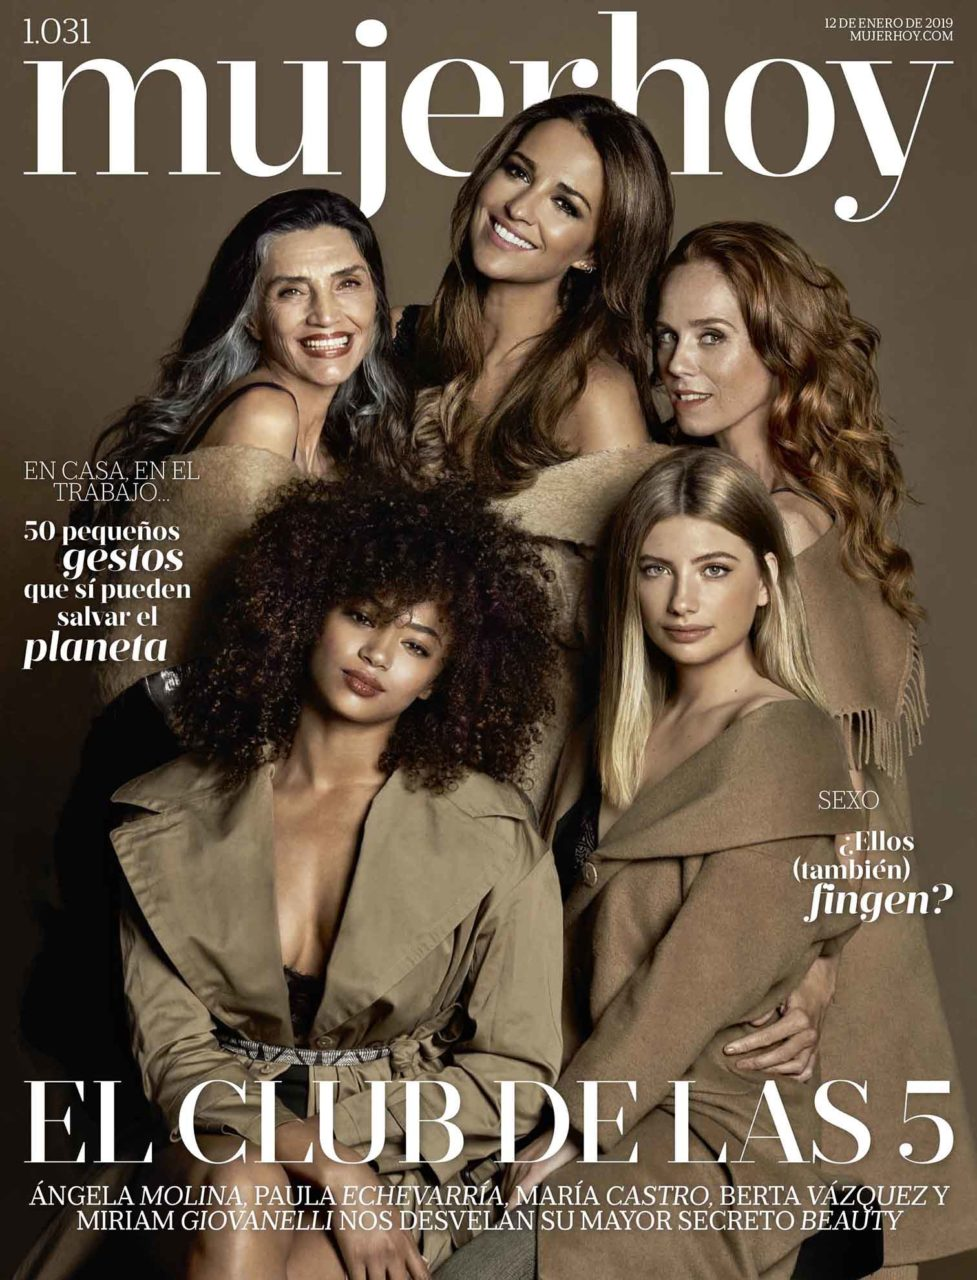 Cactus-Retouch-cover-Mujer-Hoy-Enero-2019